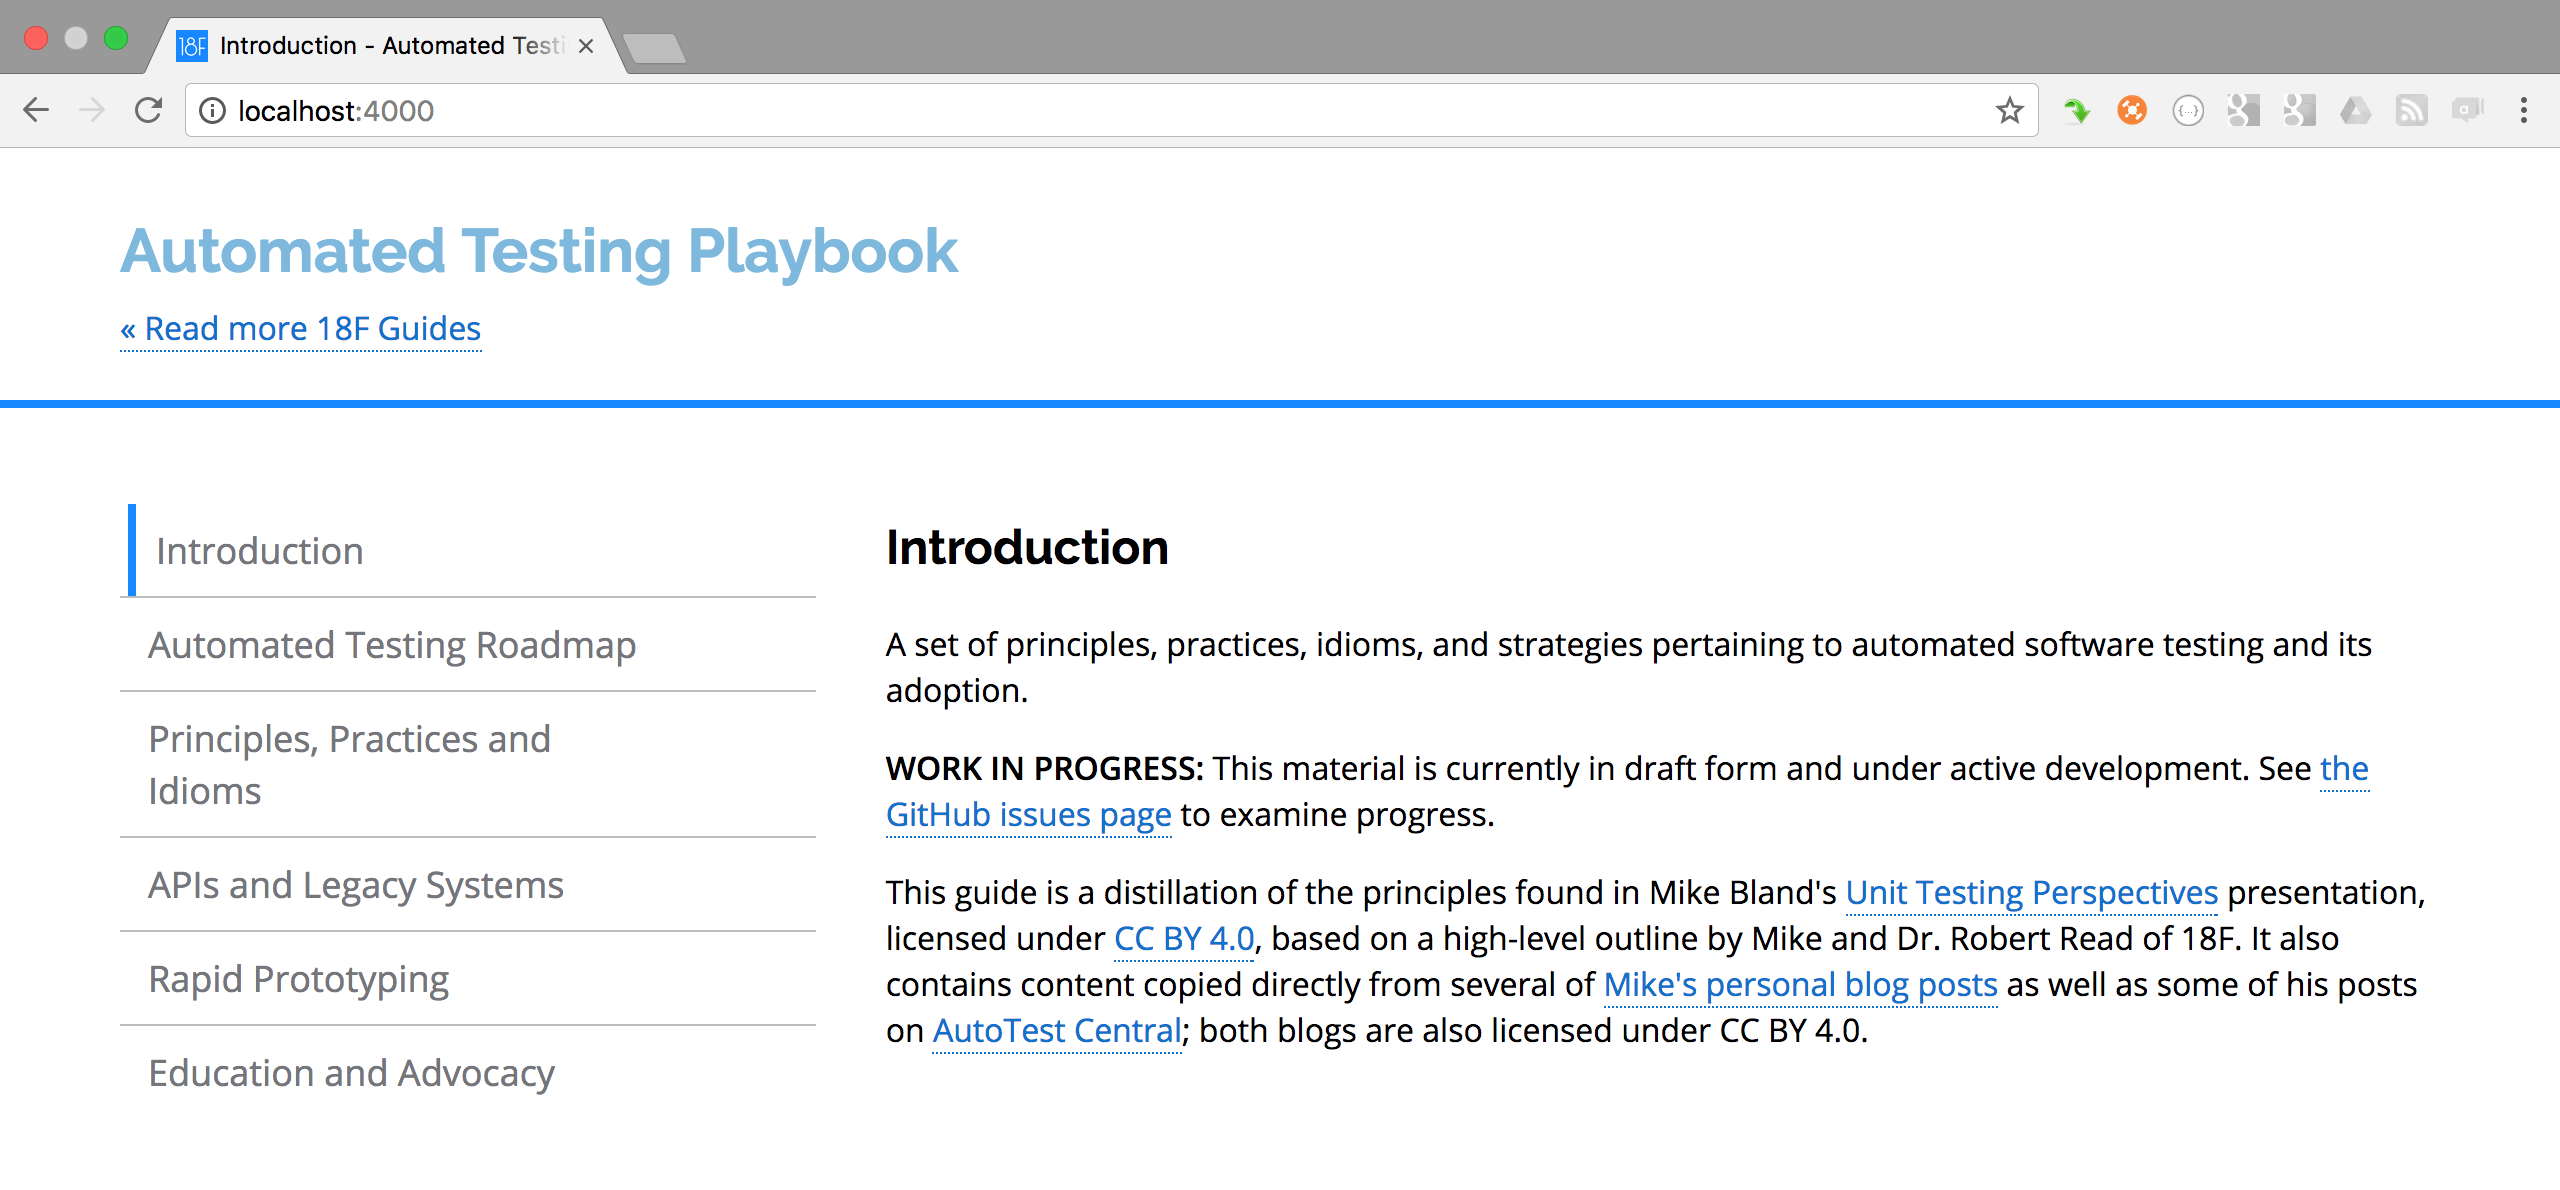 Front page of the Automated Testing Playbook